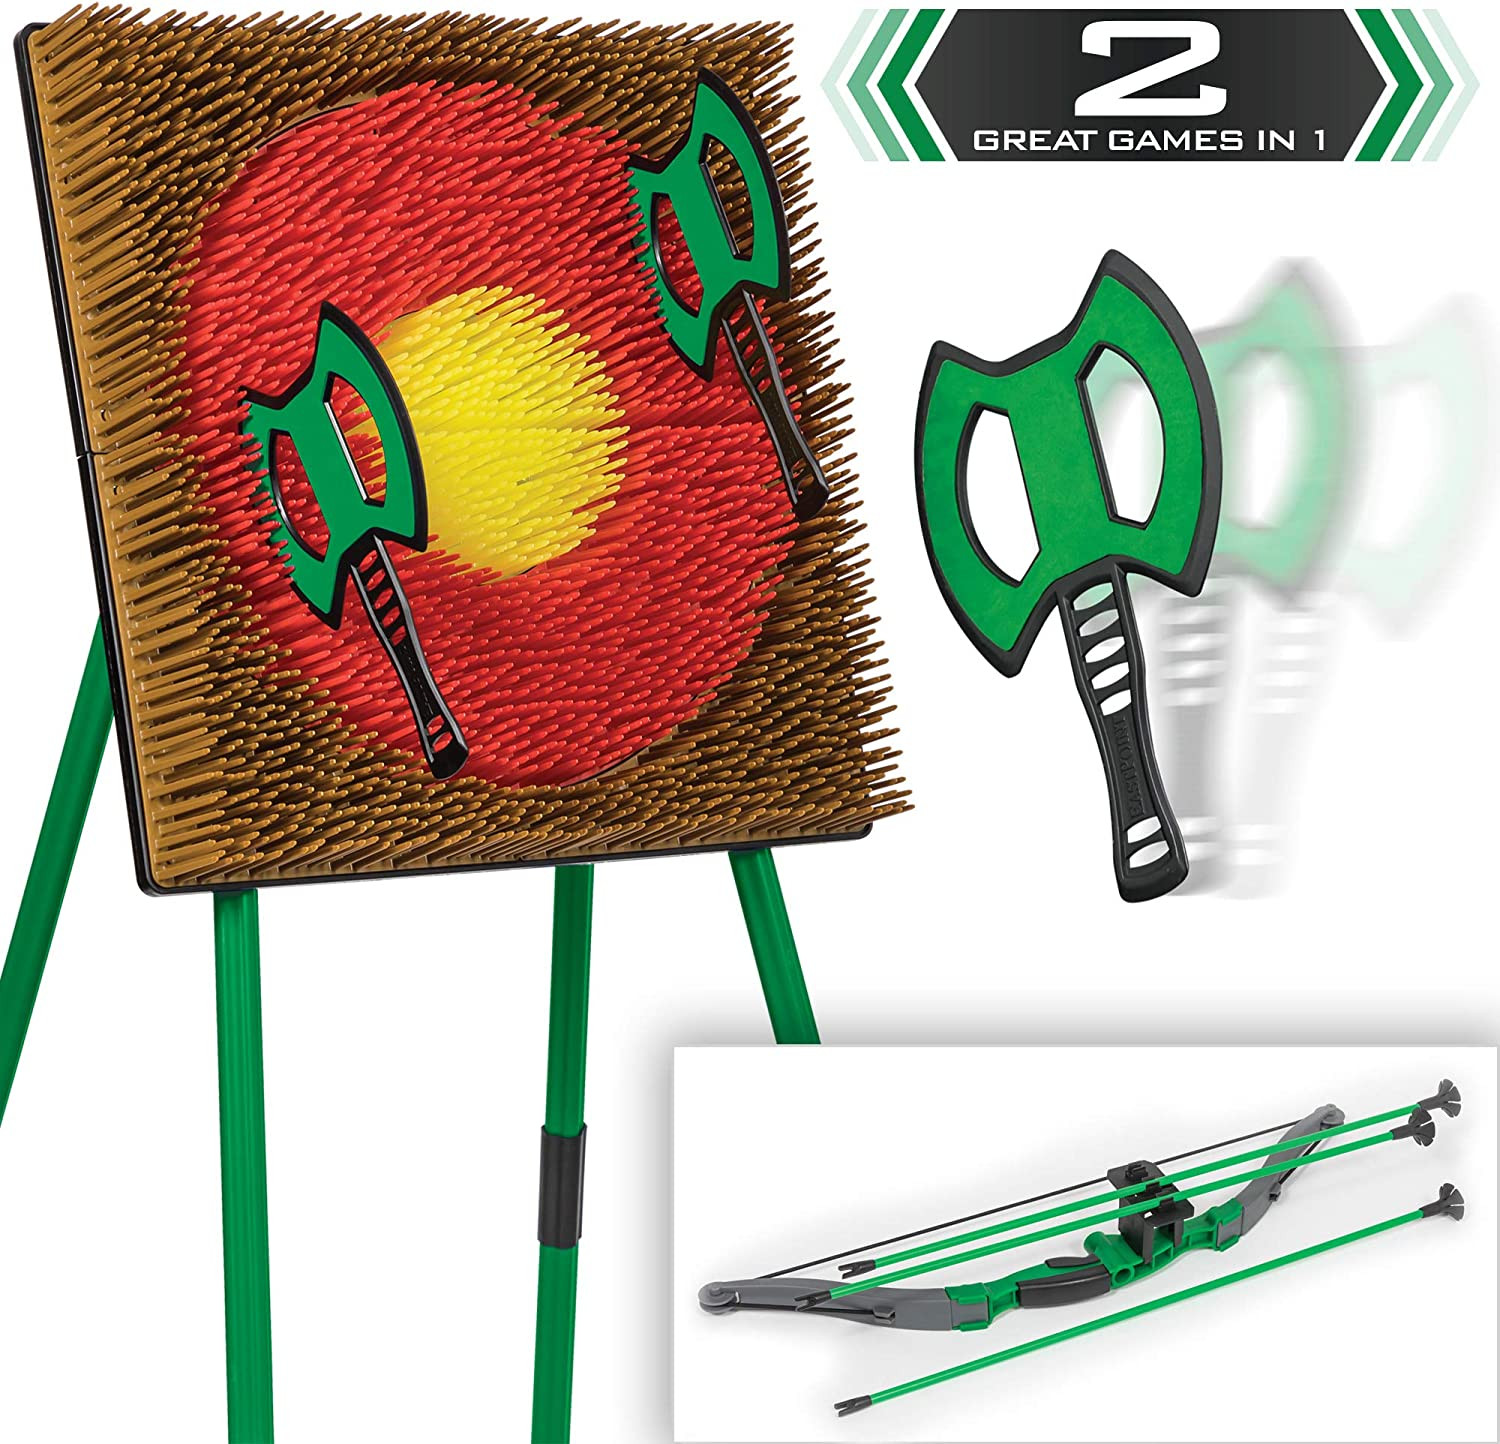 Go Gater Denver Mall OFFicial site EastPoint Sports 2-in-1 Archery S Game Tomahawk Toss